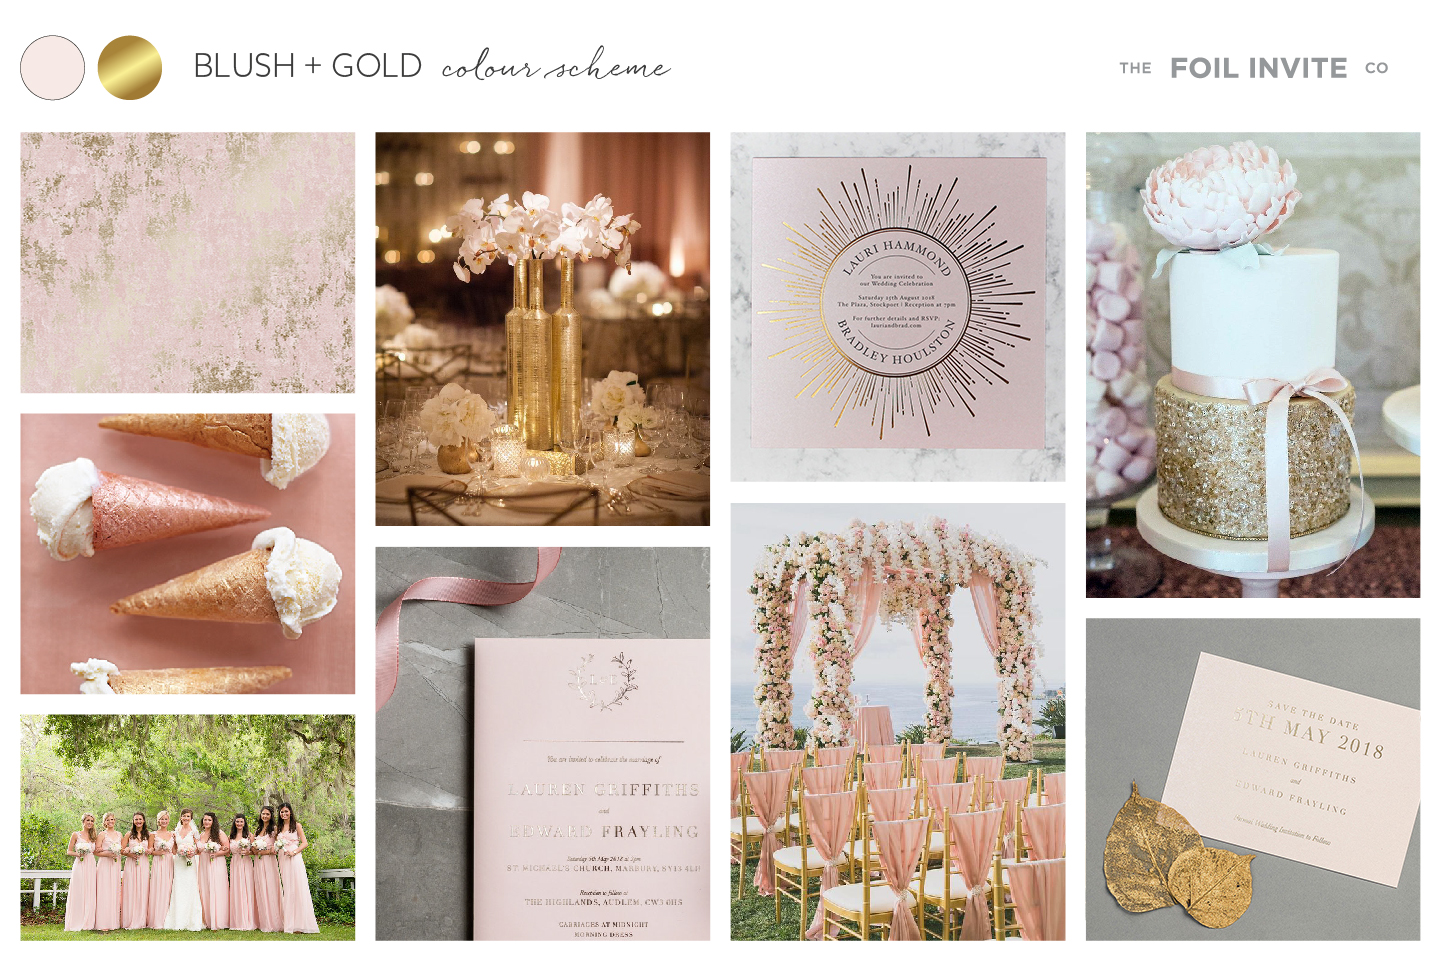 Blush and Gold Wedding Stationery Blog | Blush and Gold Wedding Invitations by The Foil Invite Company